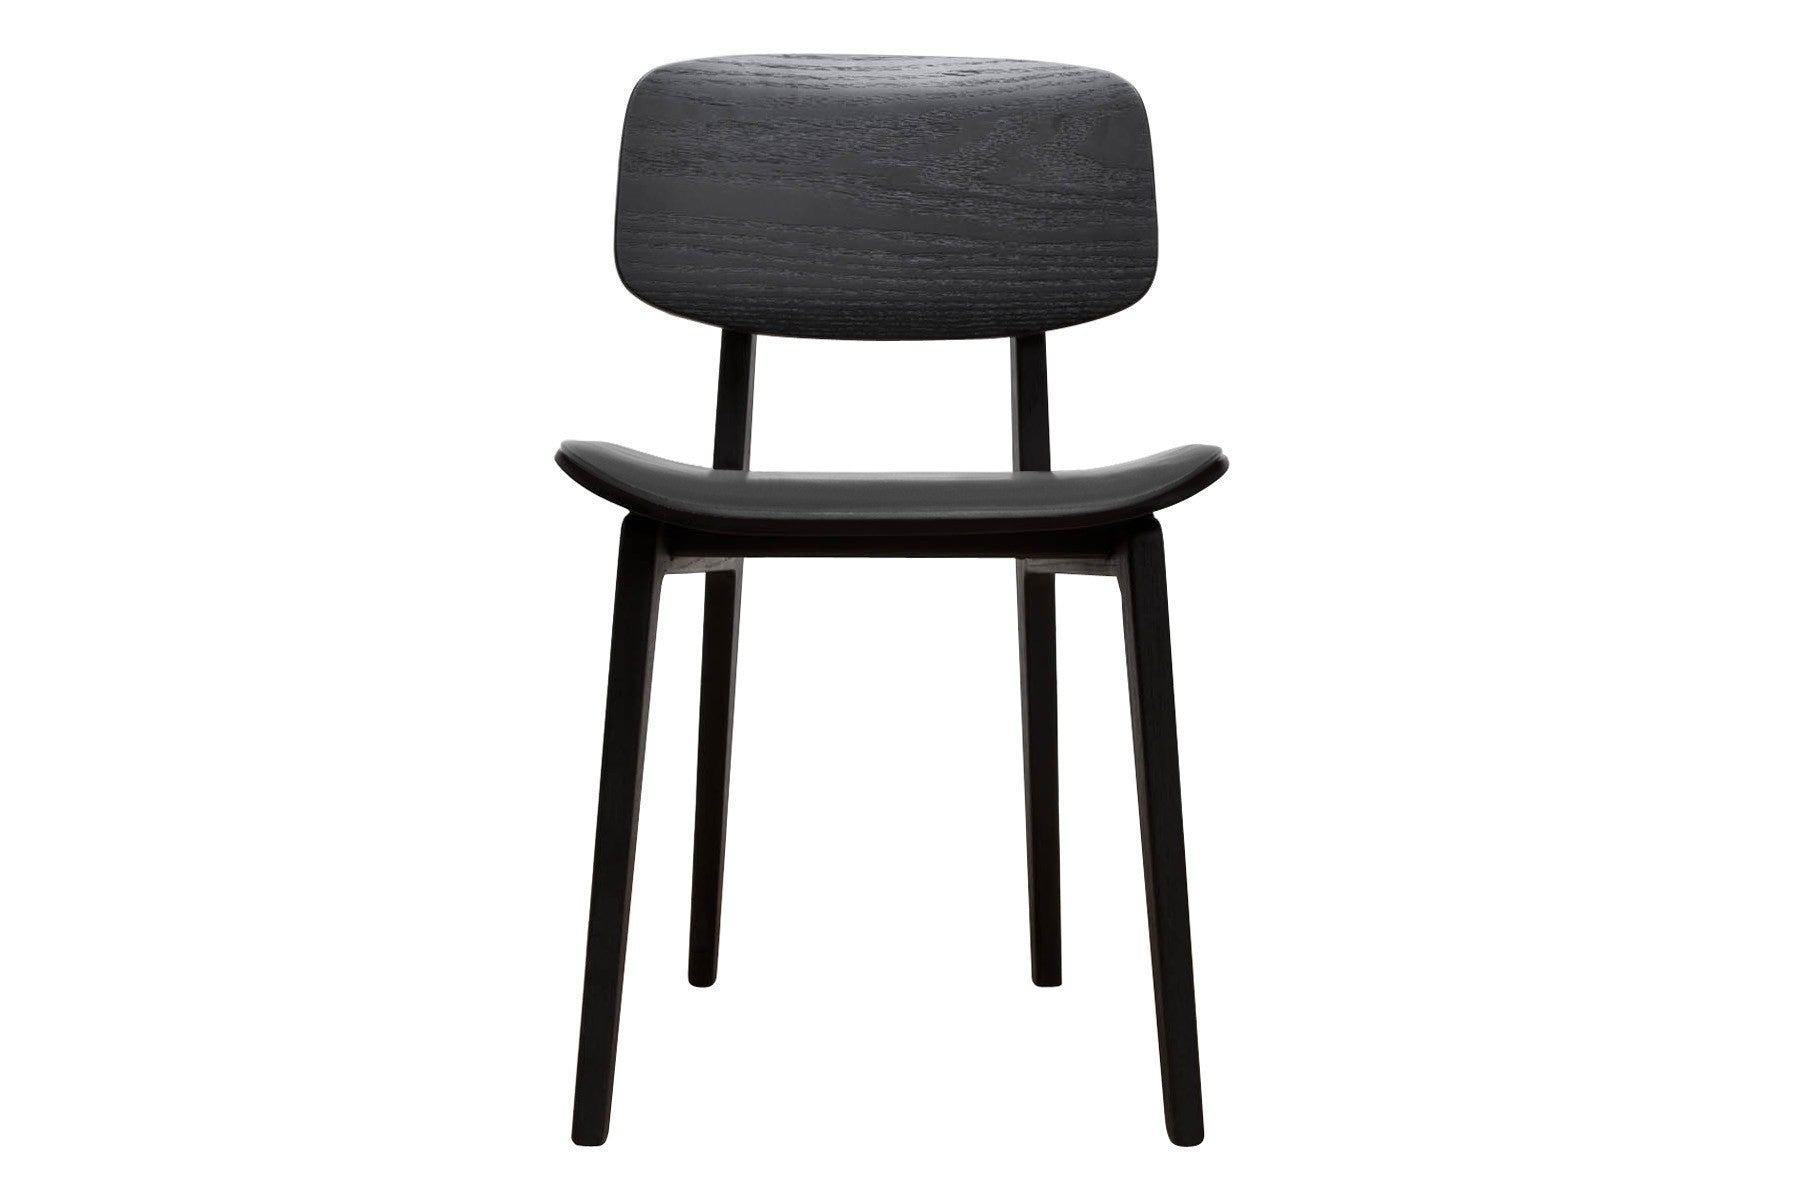 Dining chair NY11 with leather